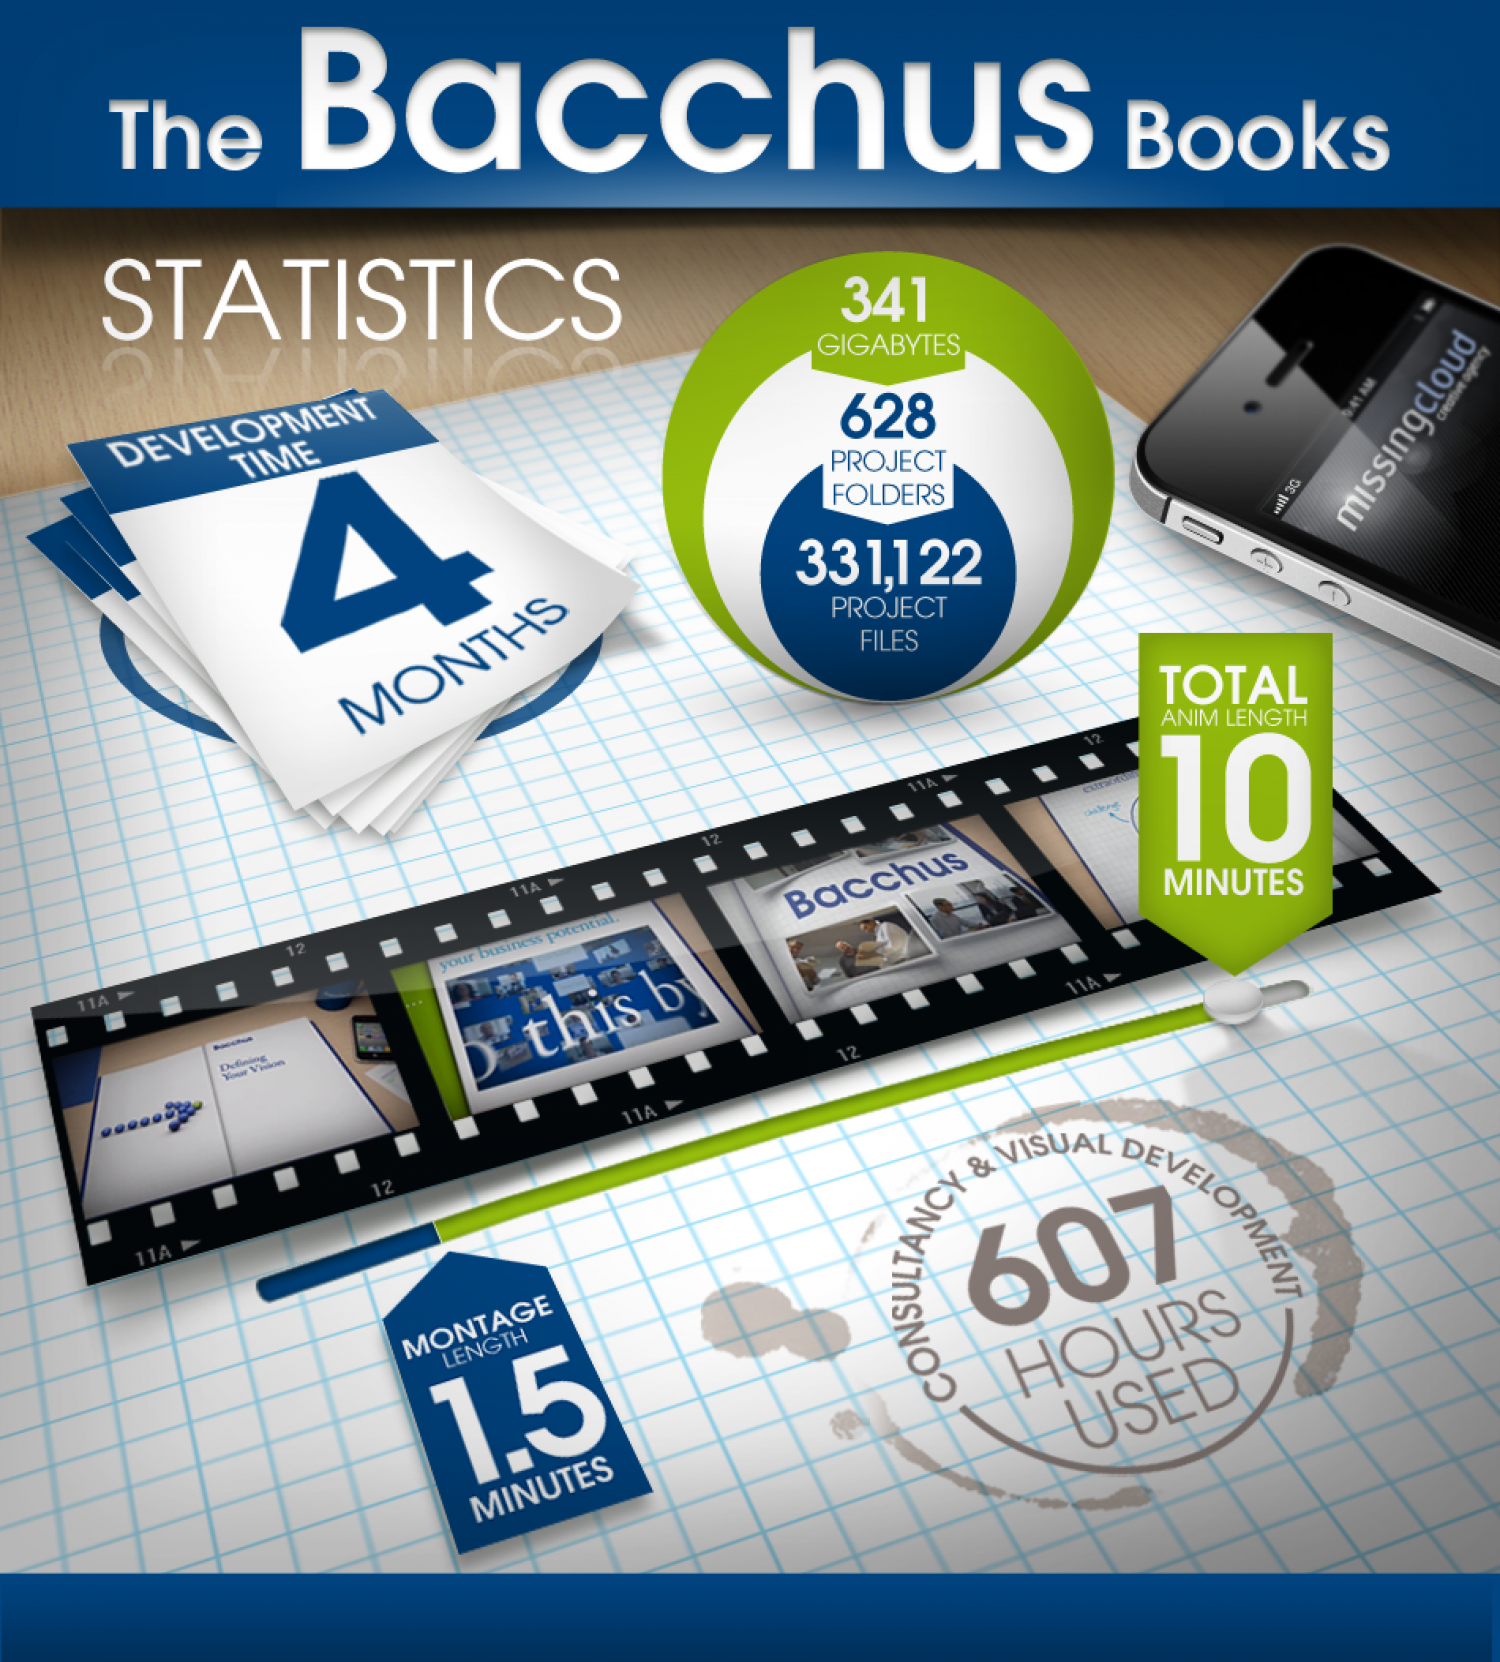 The Bacchus Books Infographic